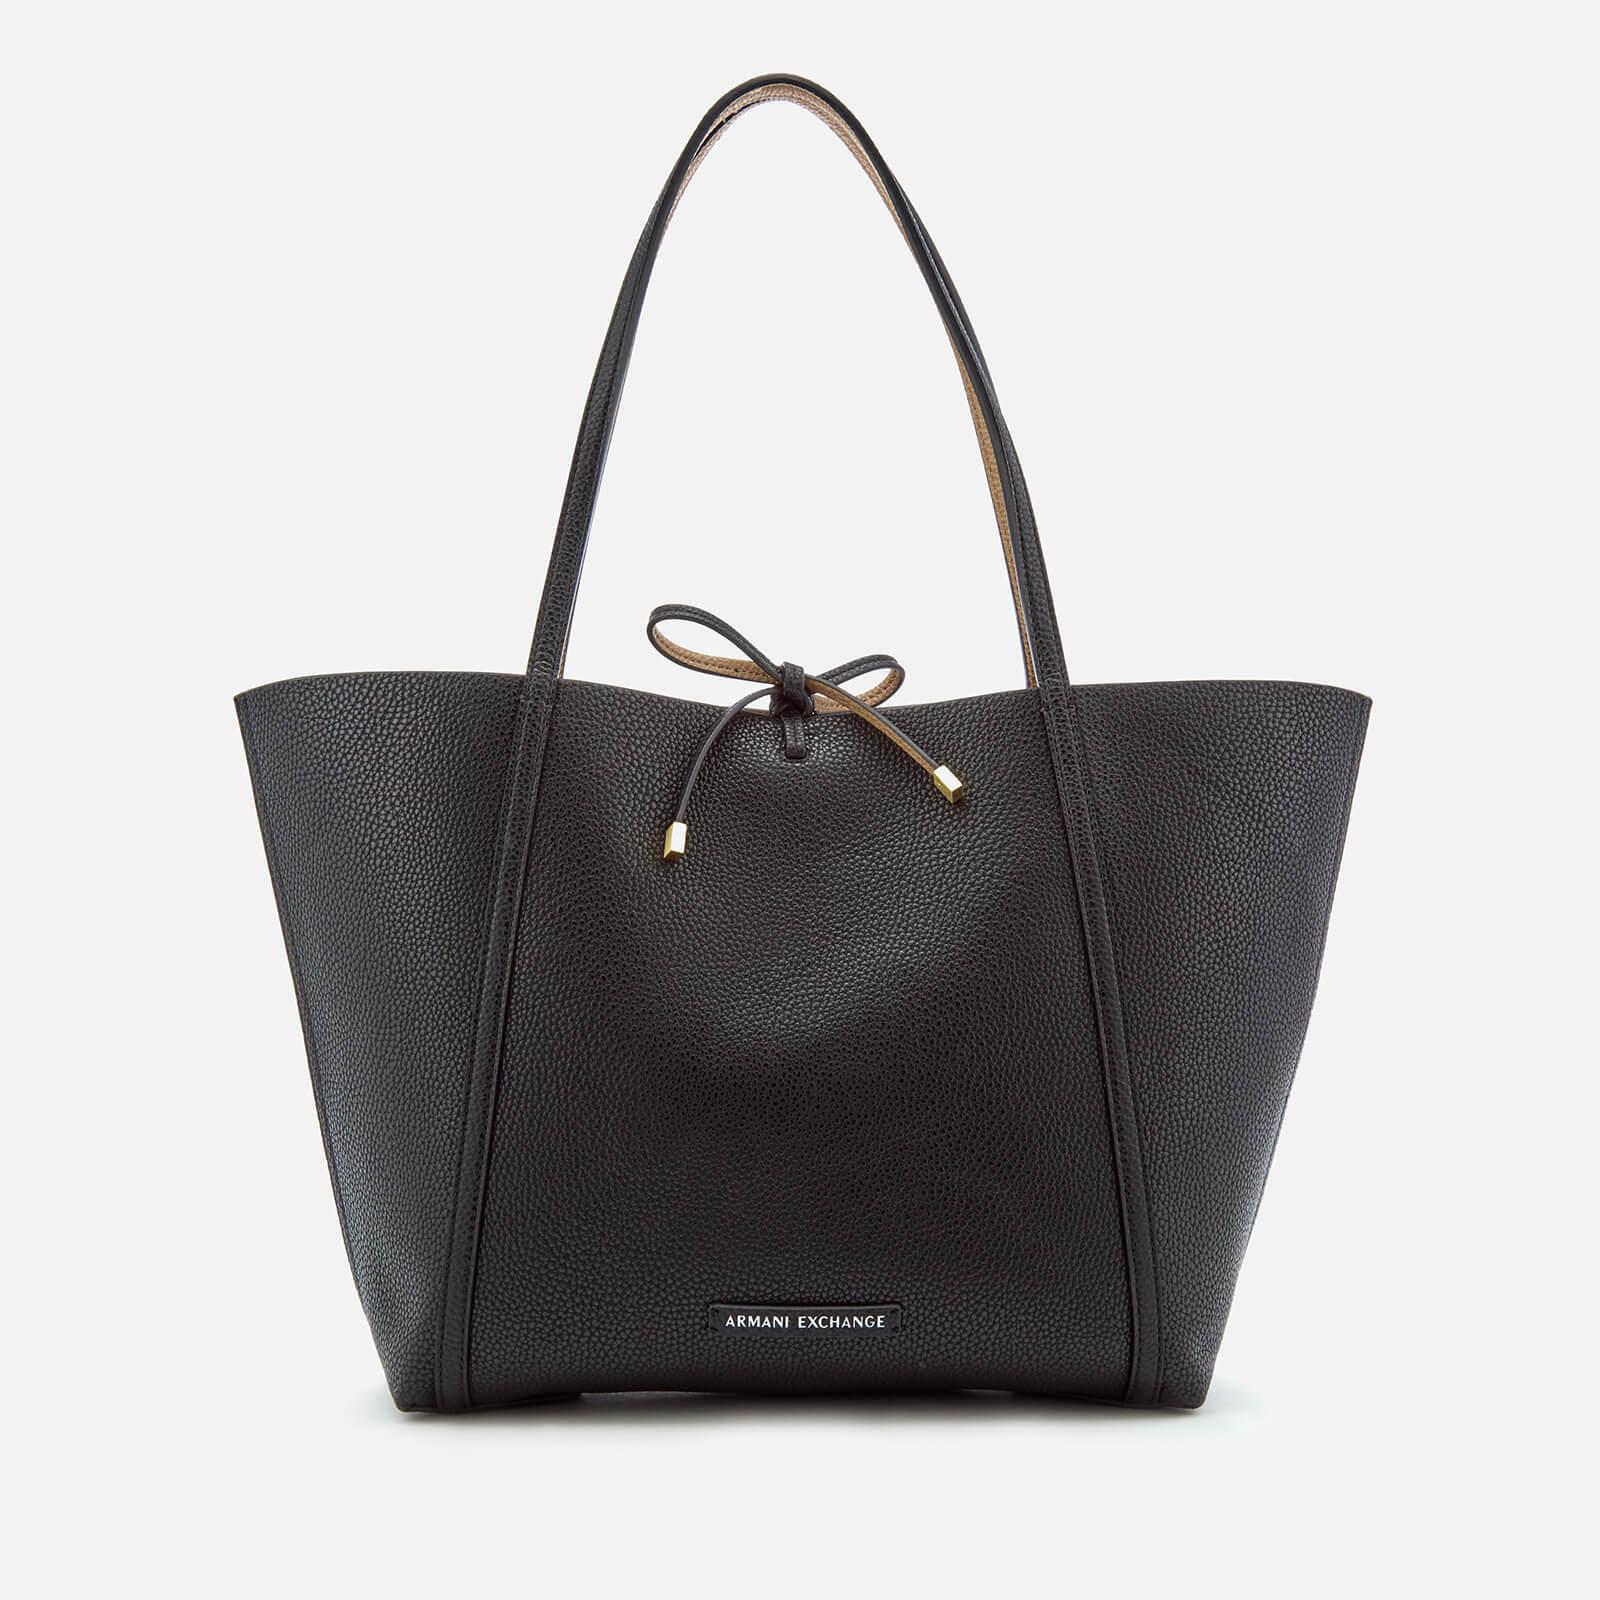 2a54ebf9fd Gallery. Previously sold at  The Hut · Women s Reversible Bags ...